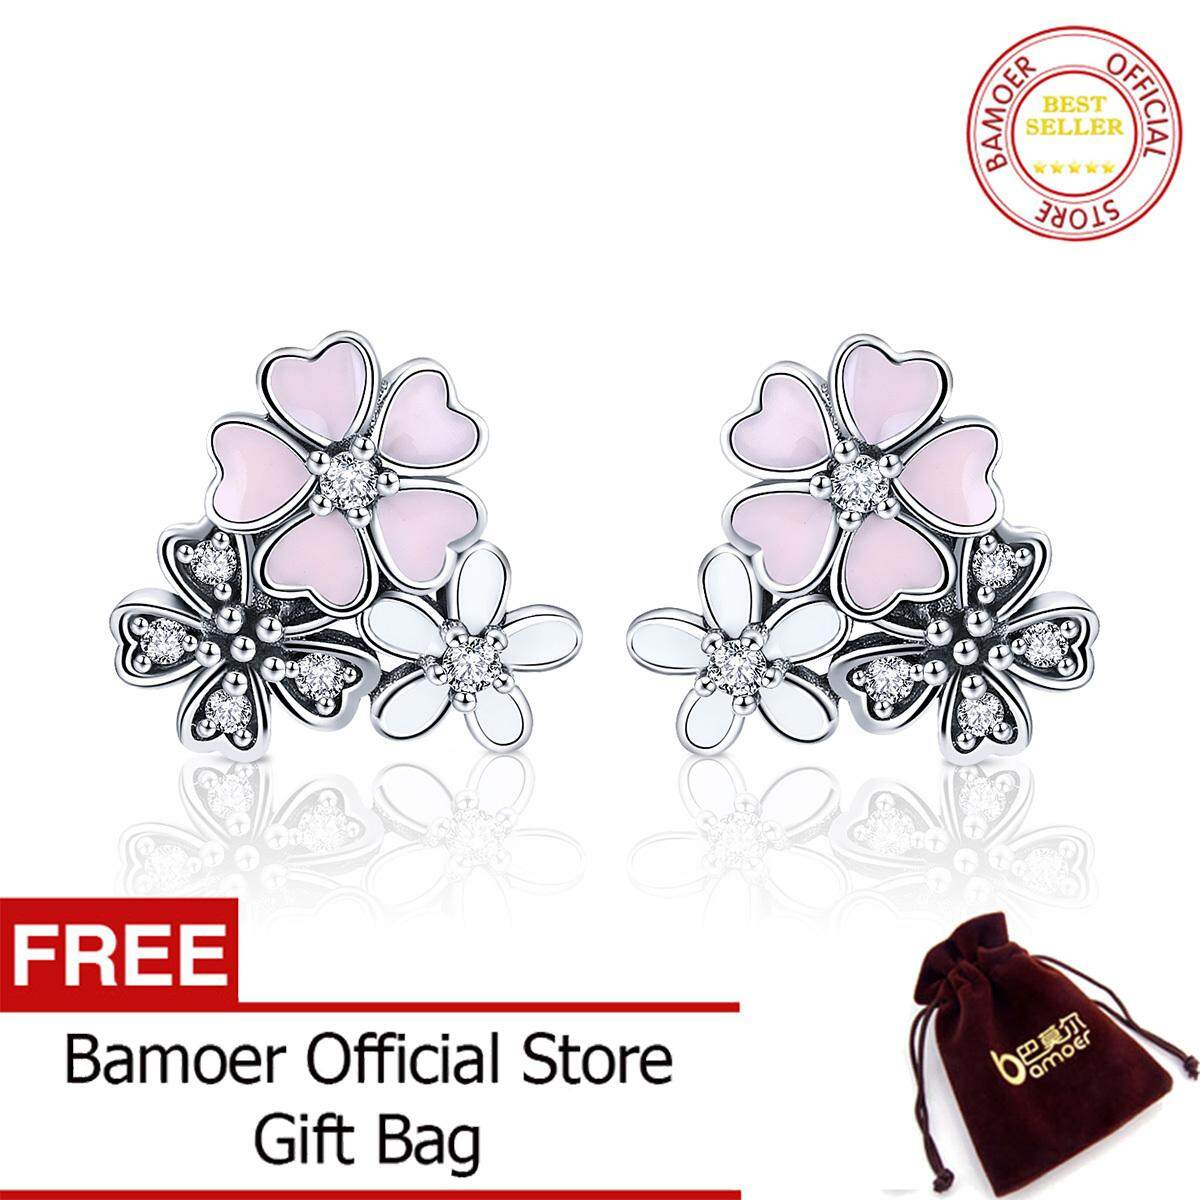 100% Authentic 925 Sterling Silver Meteor Stars Stud Earrings For Women New Fashion Cubic Zirconia Earrings High Quality Jewelry Fine Jewelry Earrings